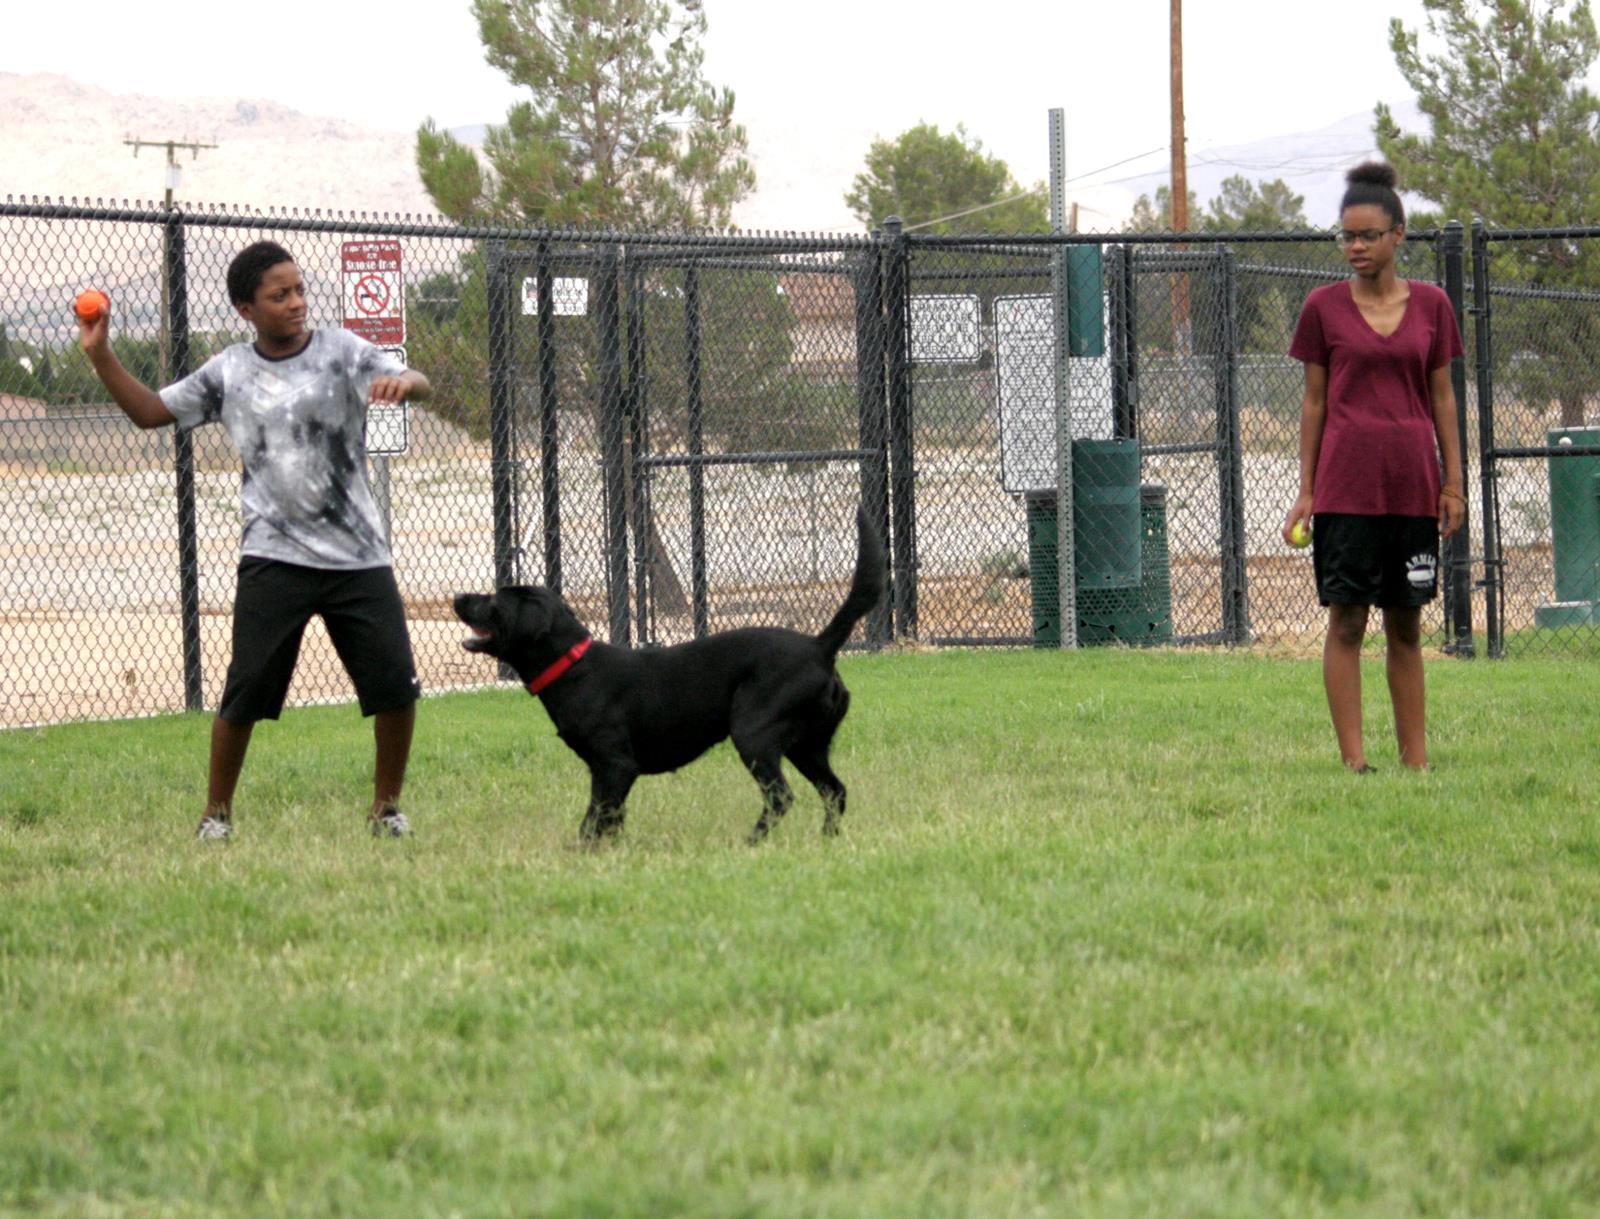 Jolly Family at Dog Park